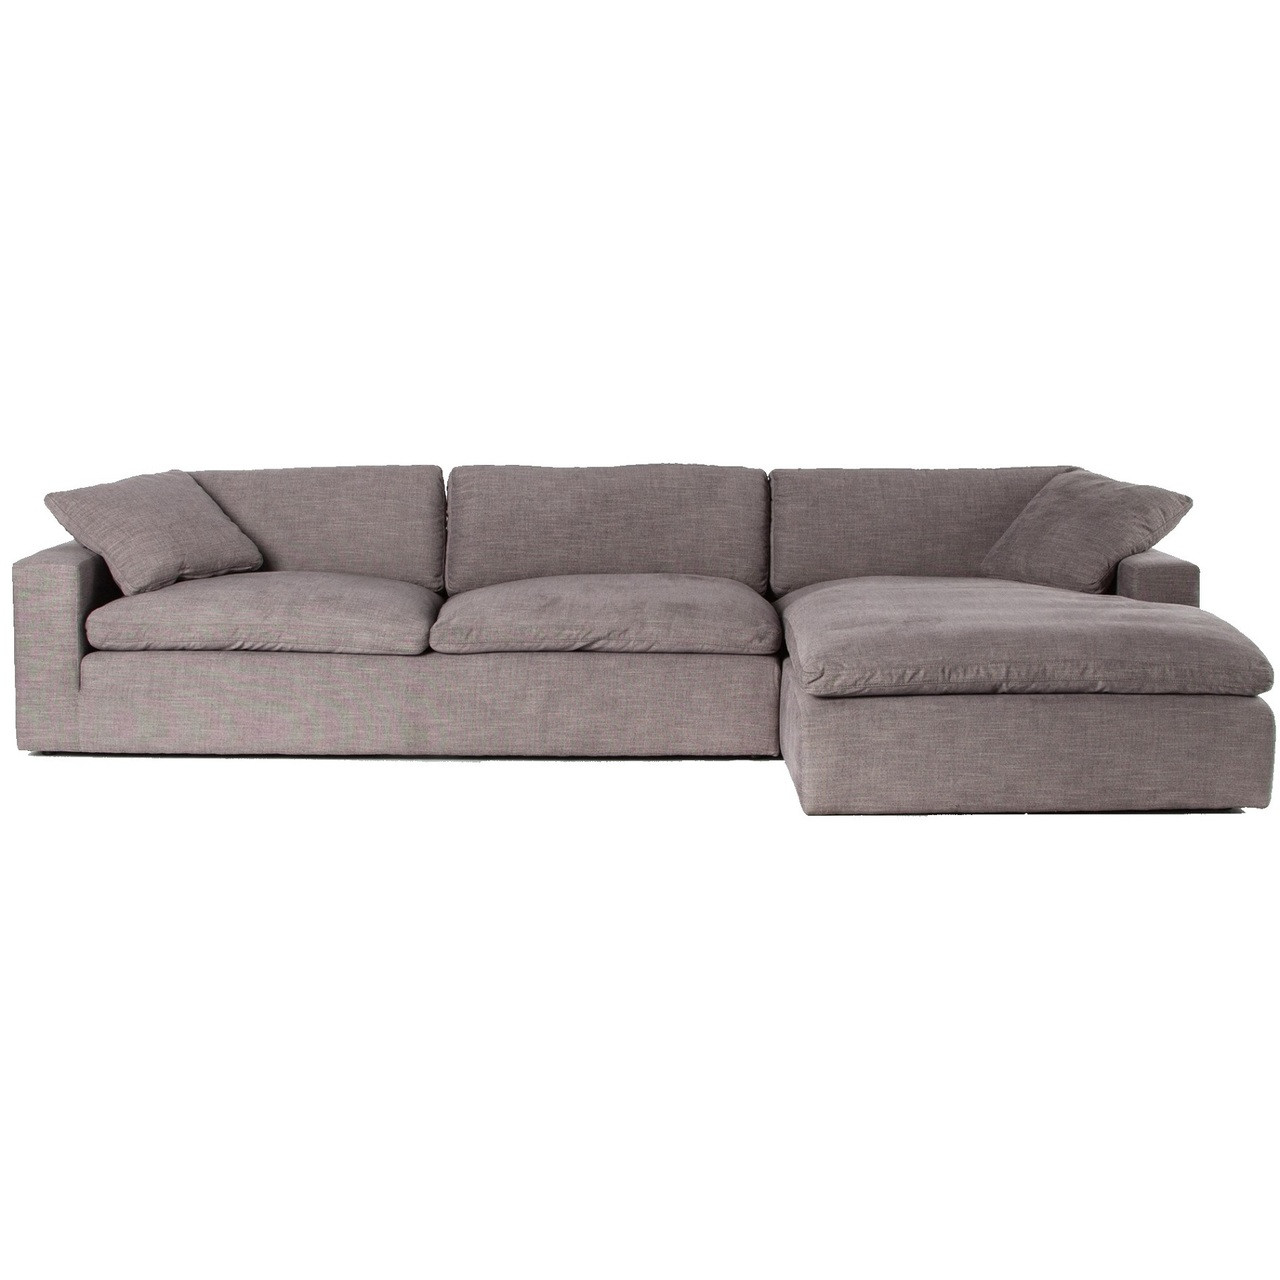 Plume Grey Upholstered Block Arm Large Sectional Sofa 136\